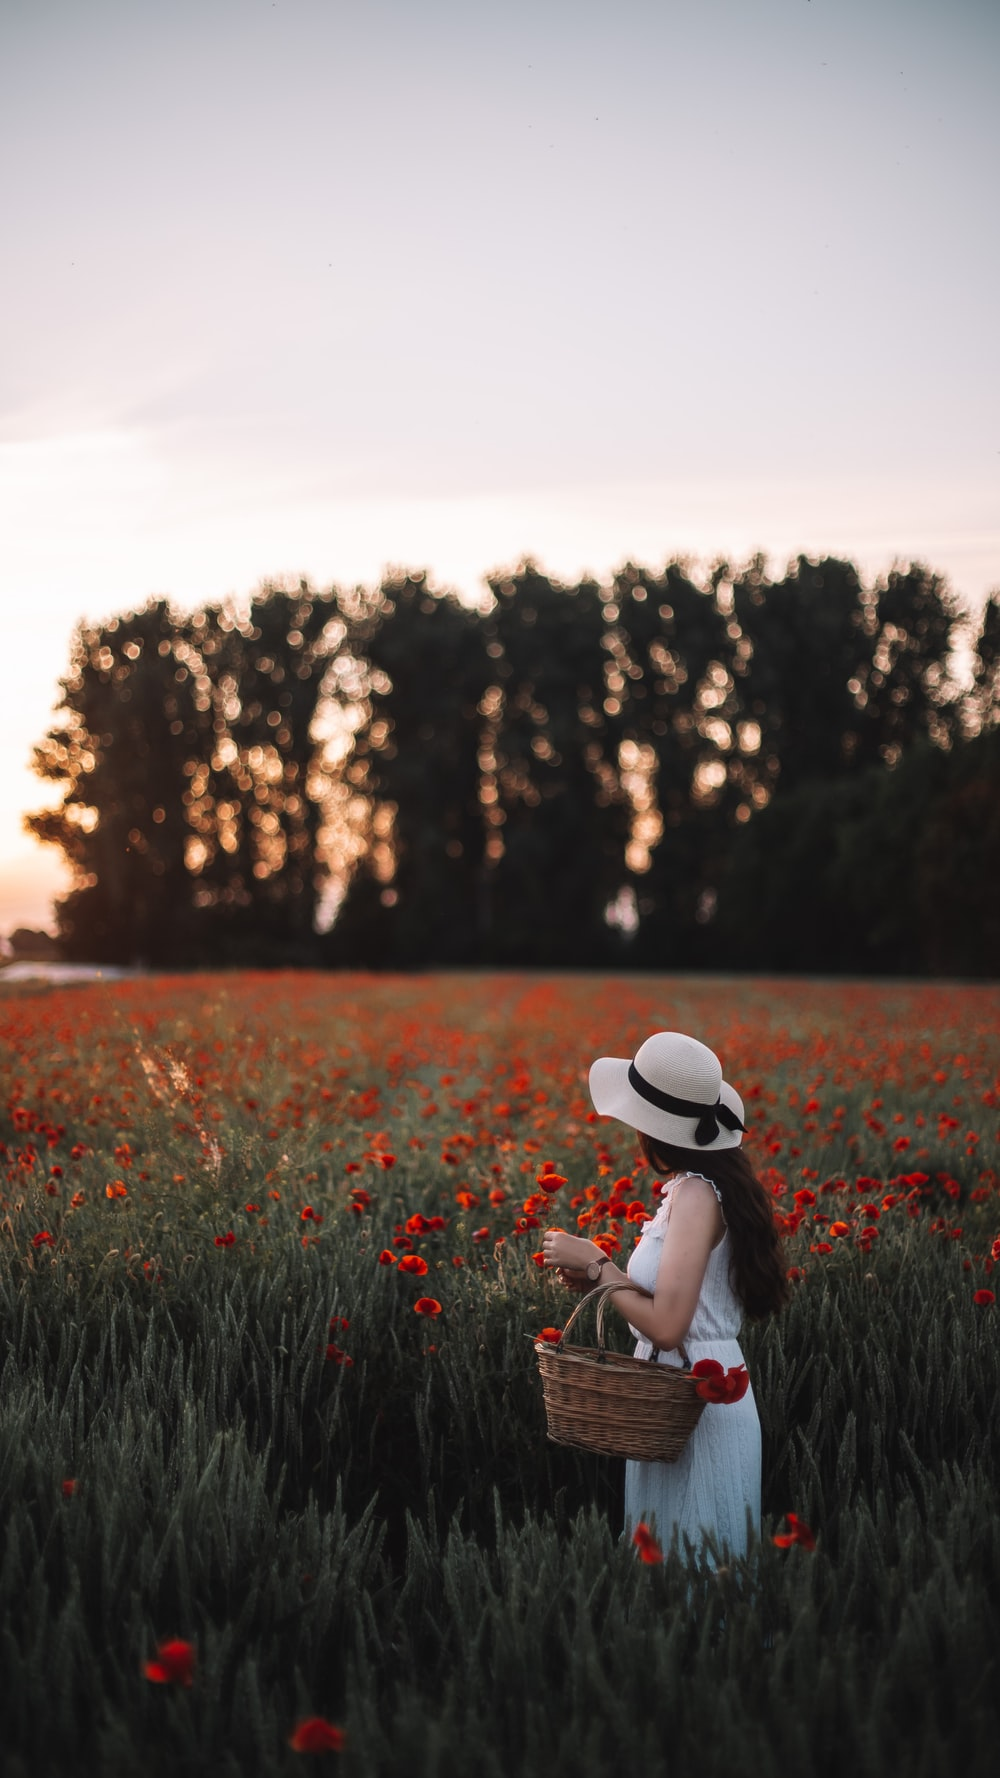 woman in white hat sitting on grass field during daytime